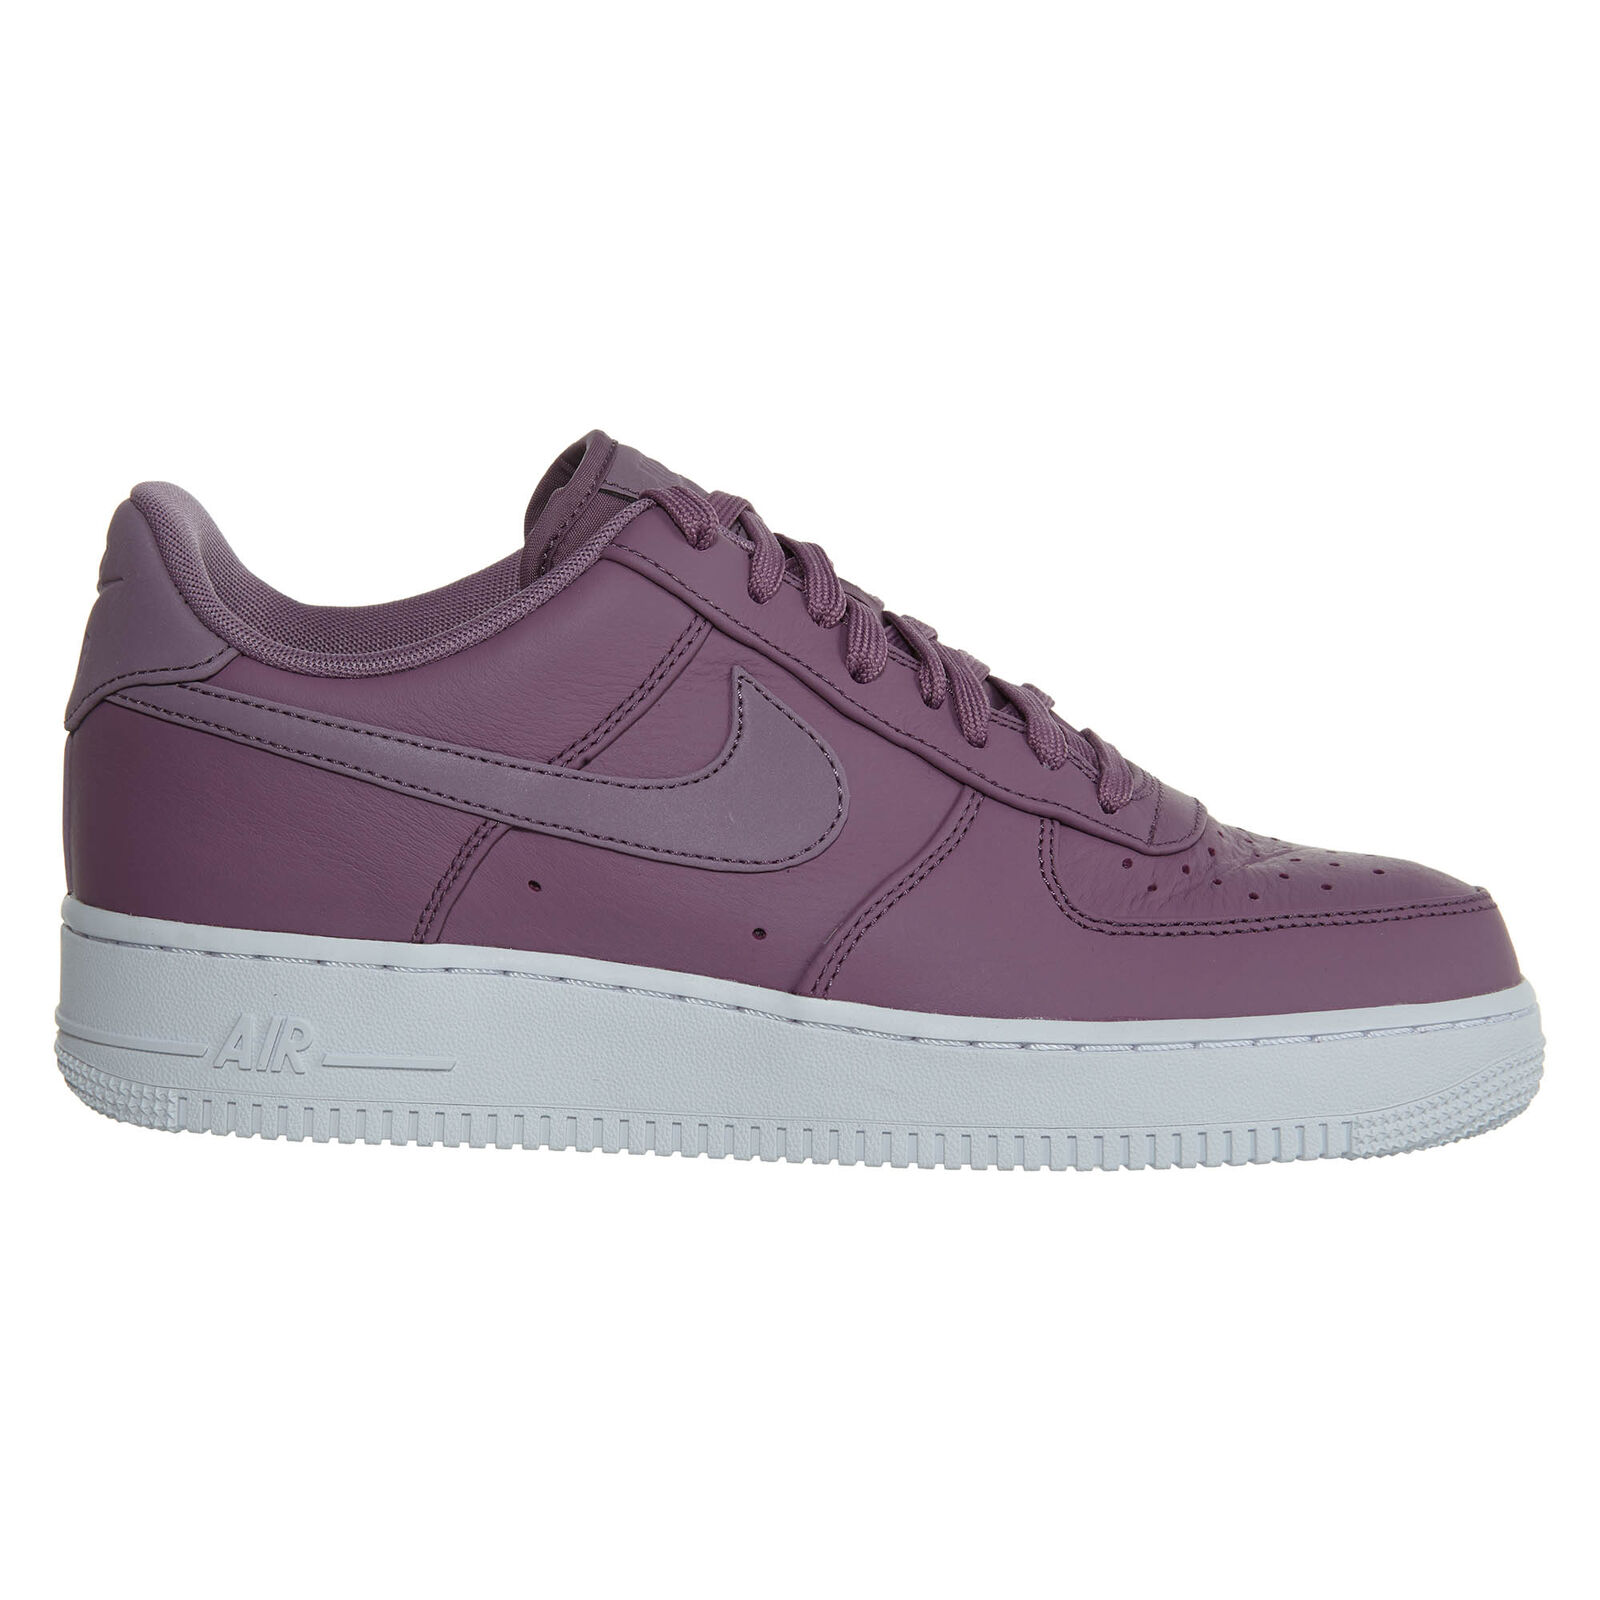 Nike Air Force 1 '07 Premium Mens 905345-501 Violet Dust Leather Shoes Size 9.5